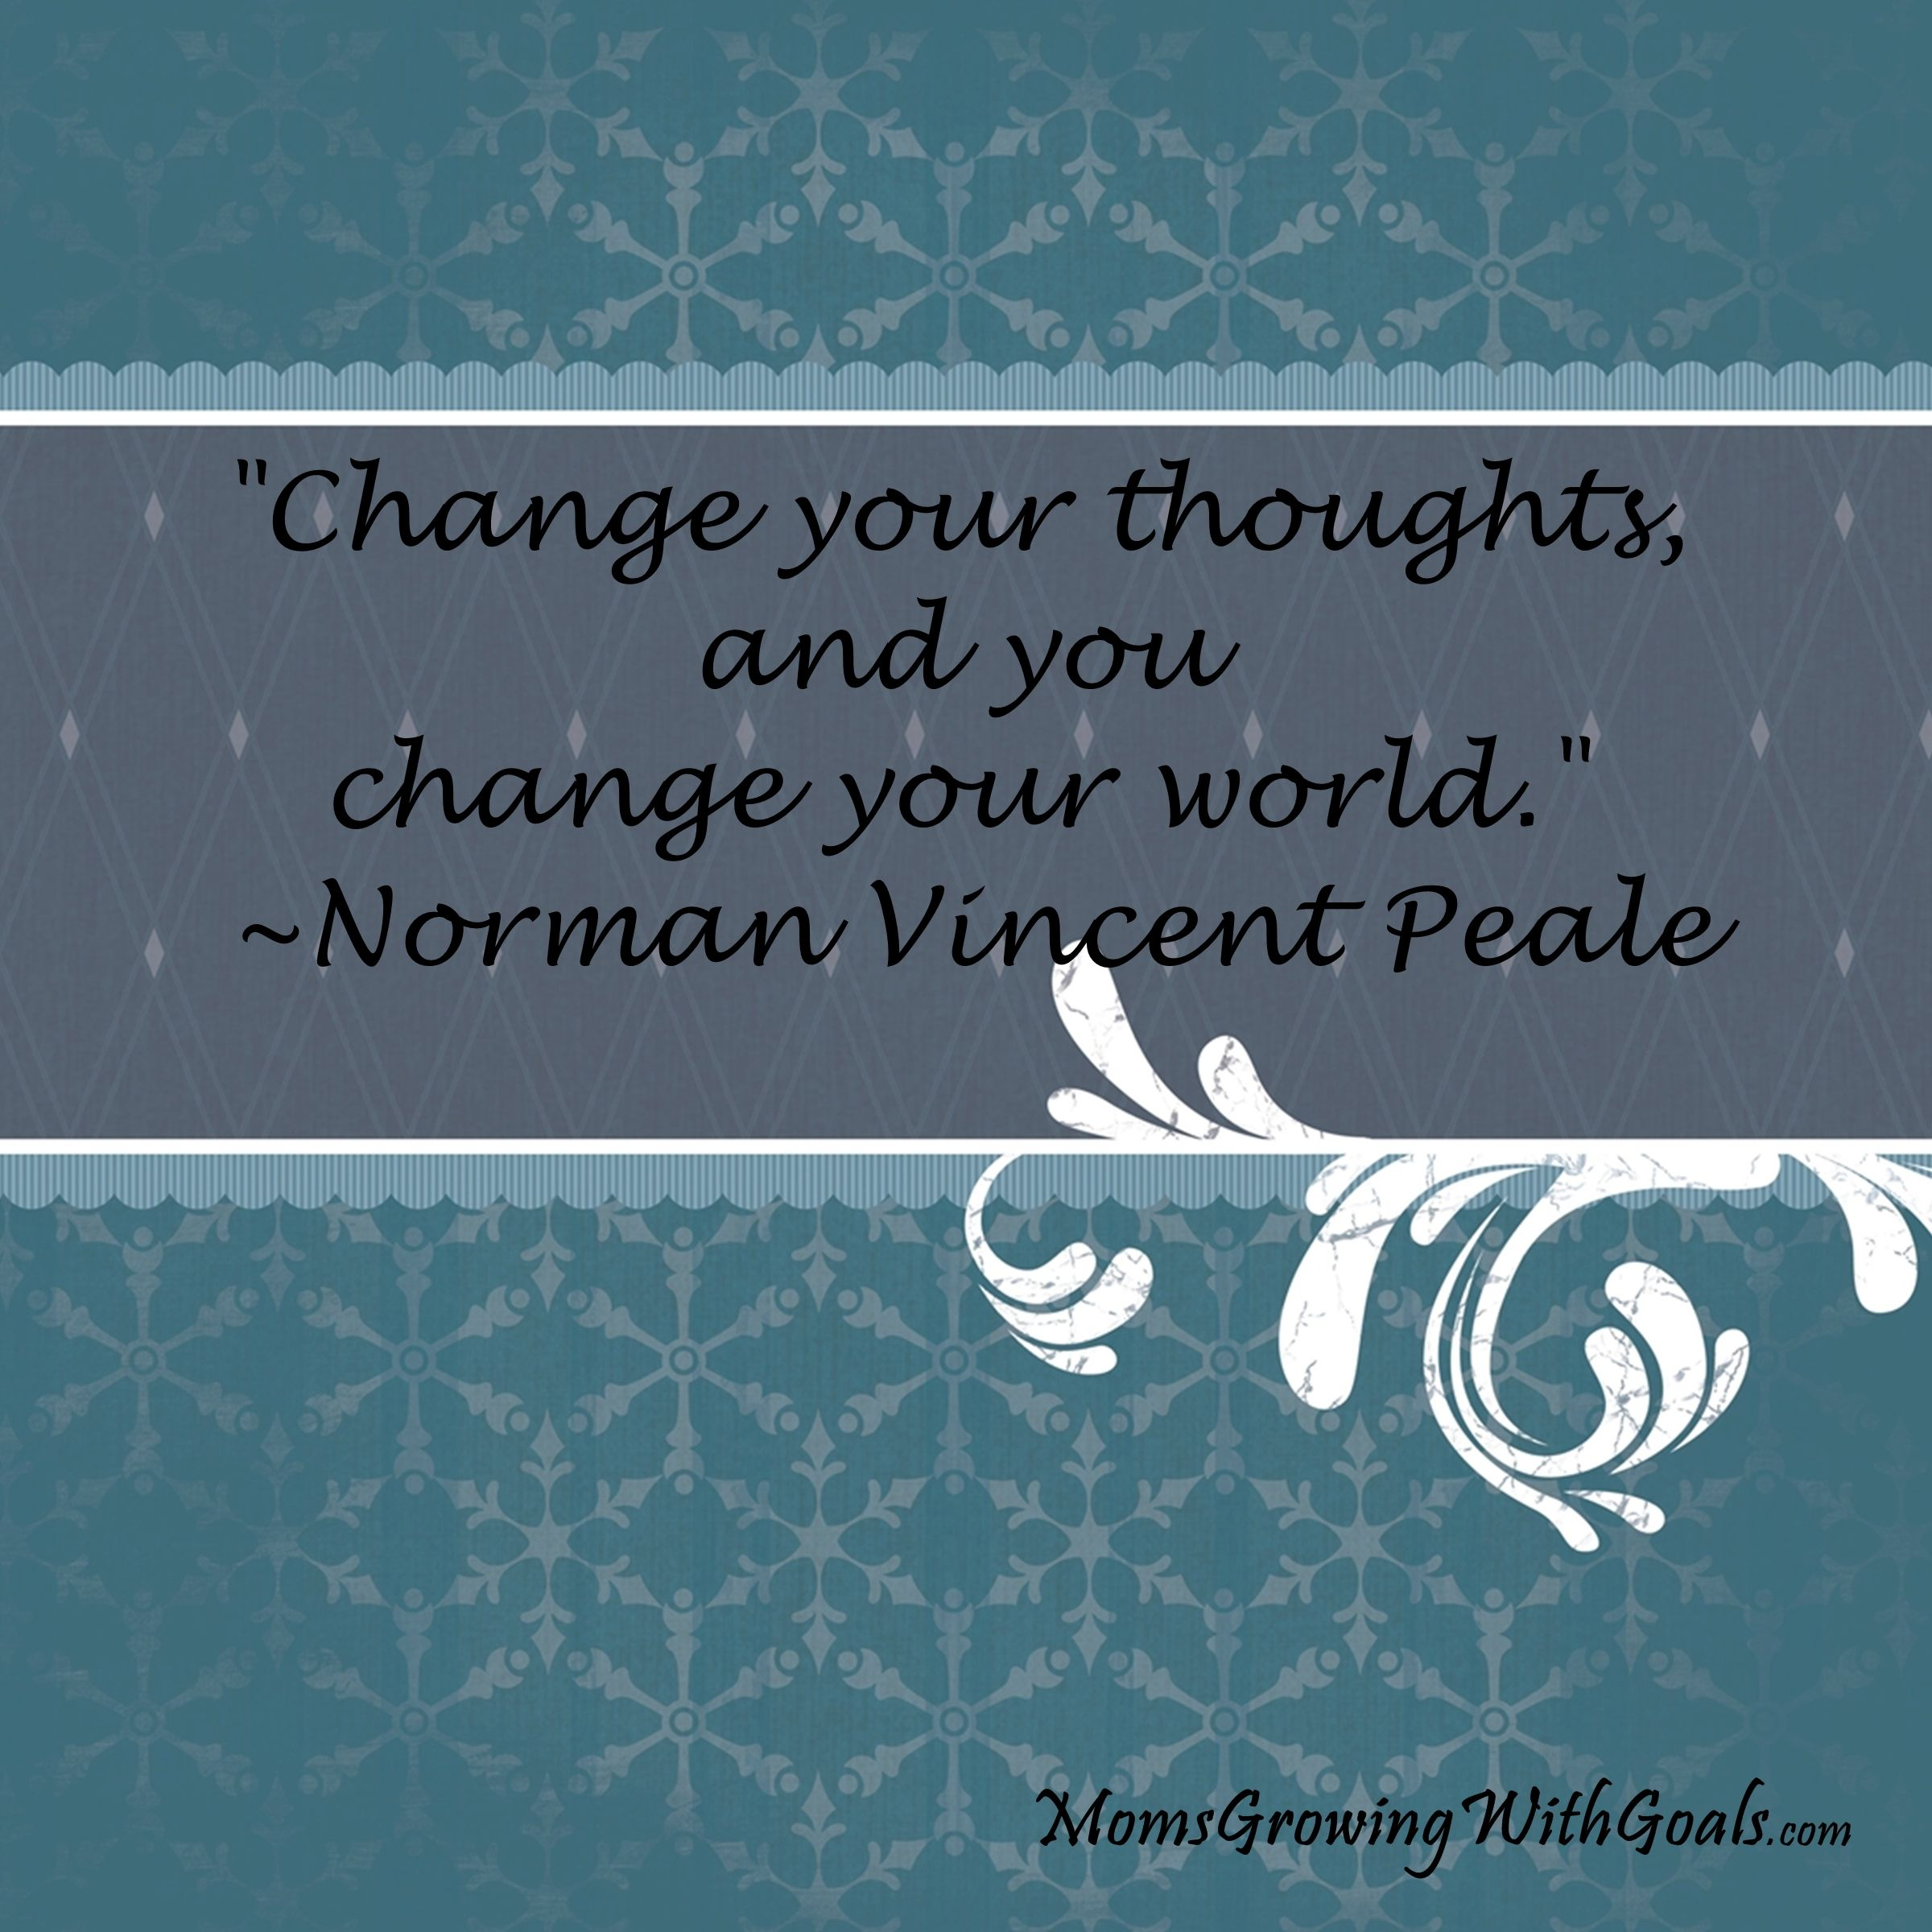 Inspirational Quotes About Change Our Own Thoughts Are Often The Greatest Obstacle To Positive